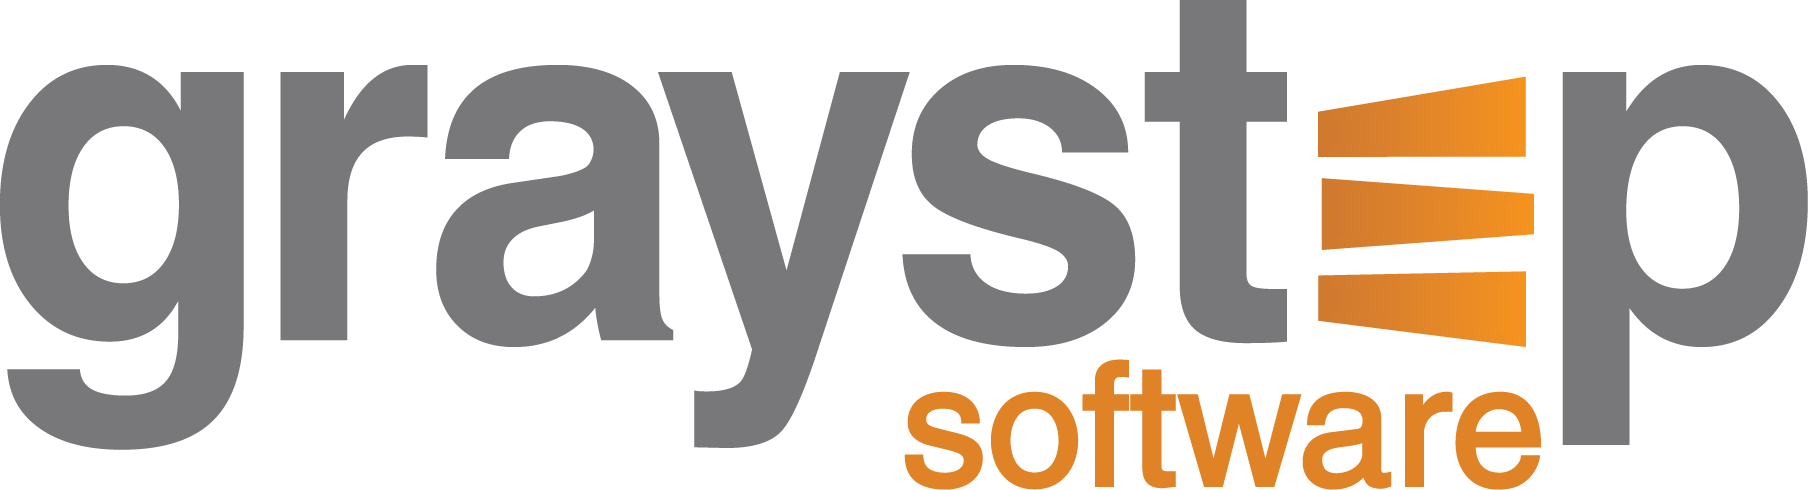 Gray Step Software Logo